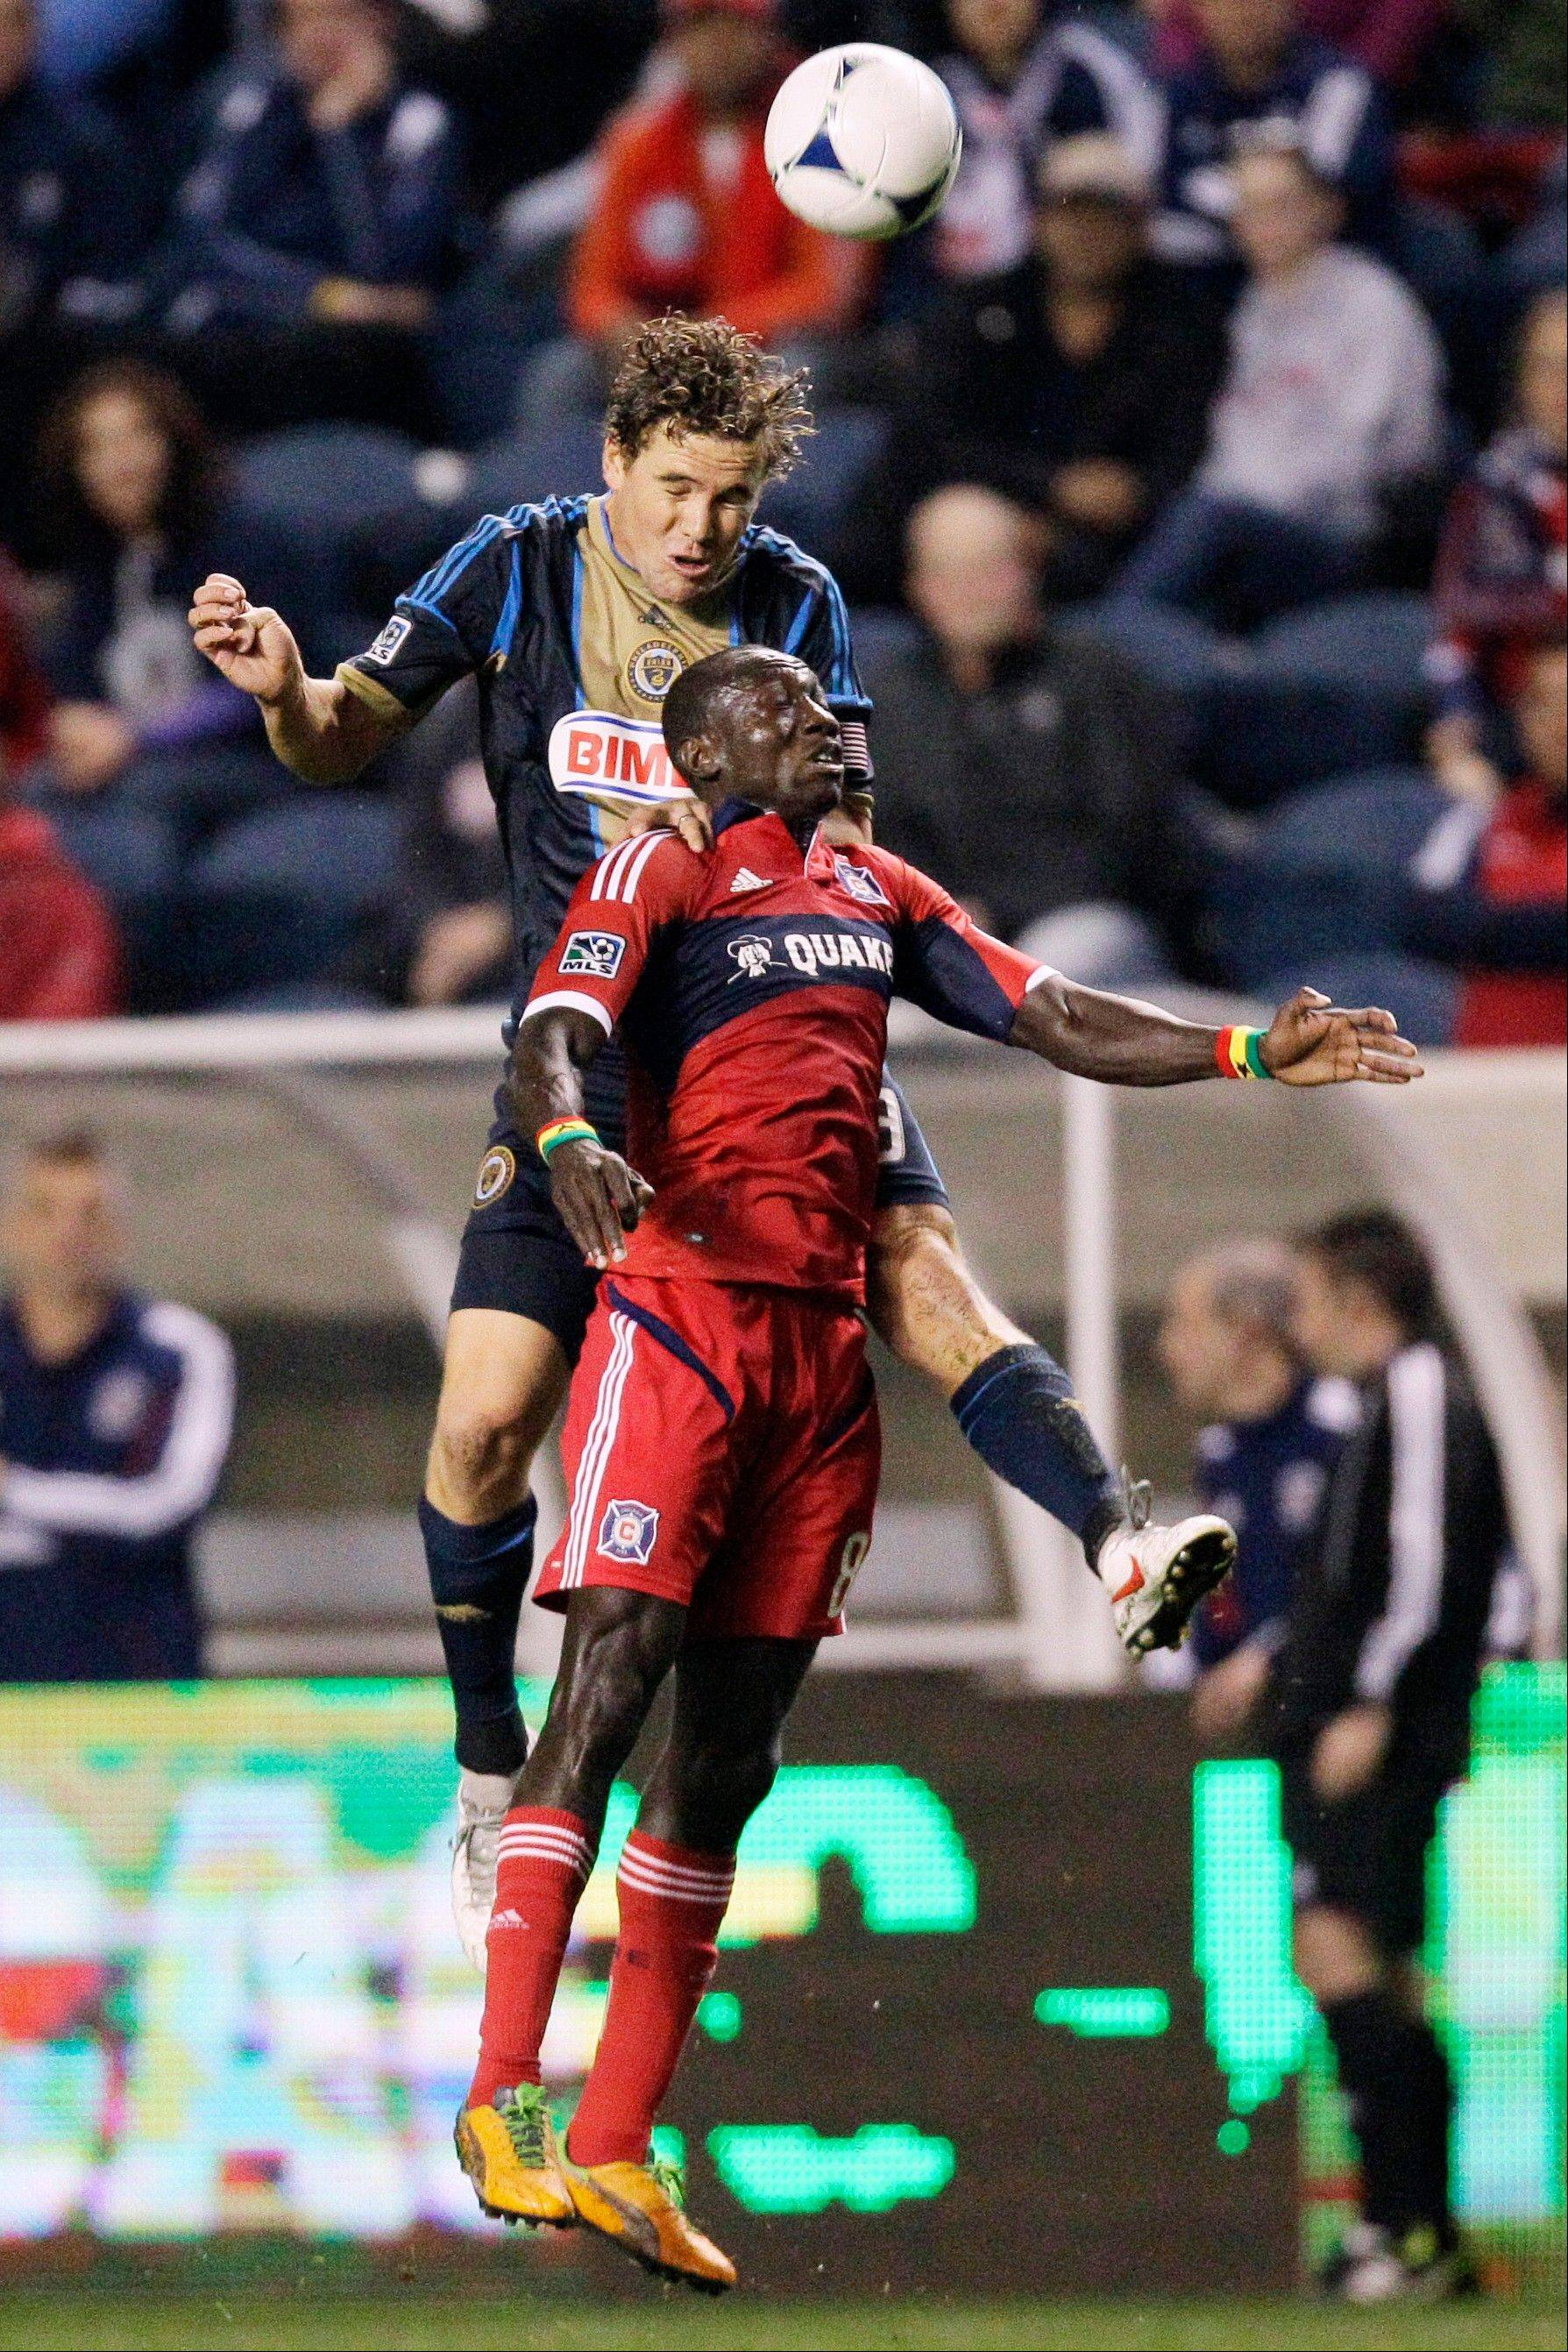 Philadelphia Union defender Chris Albright, top, and Chicago Fire forward Dominic Oduro (8) head the ball during the second half of an MLS soccer match, Wednesday, Oct. 3, 2012, in Bridgeview, Ill. The Union won 3-1.